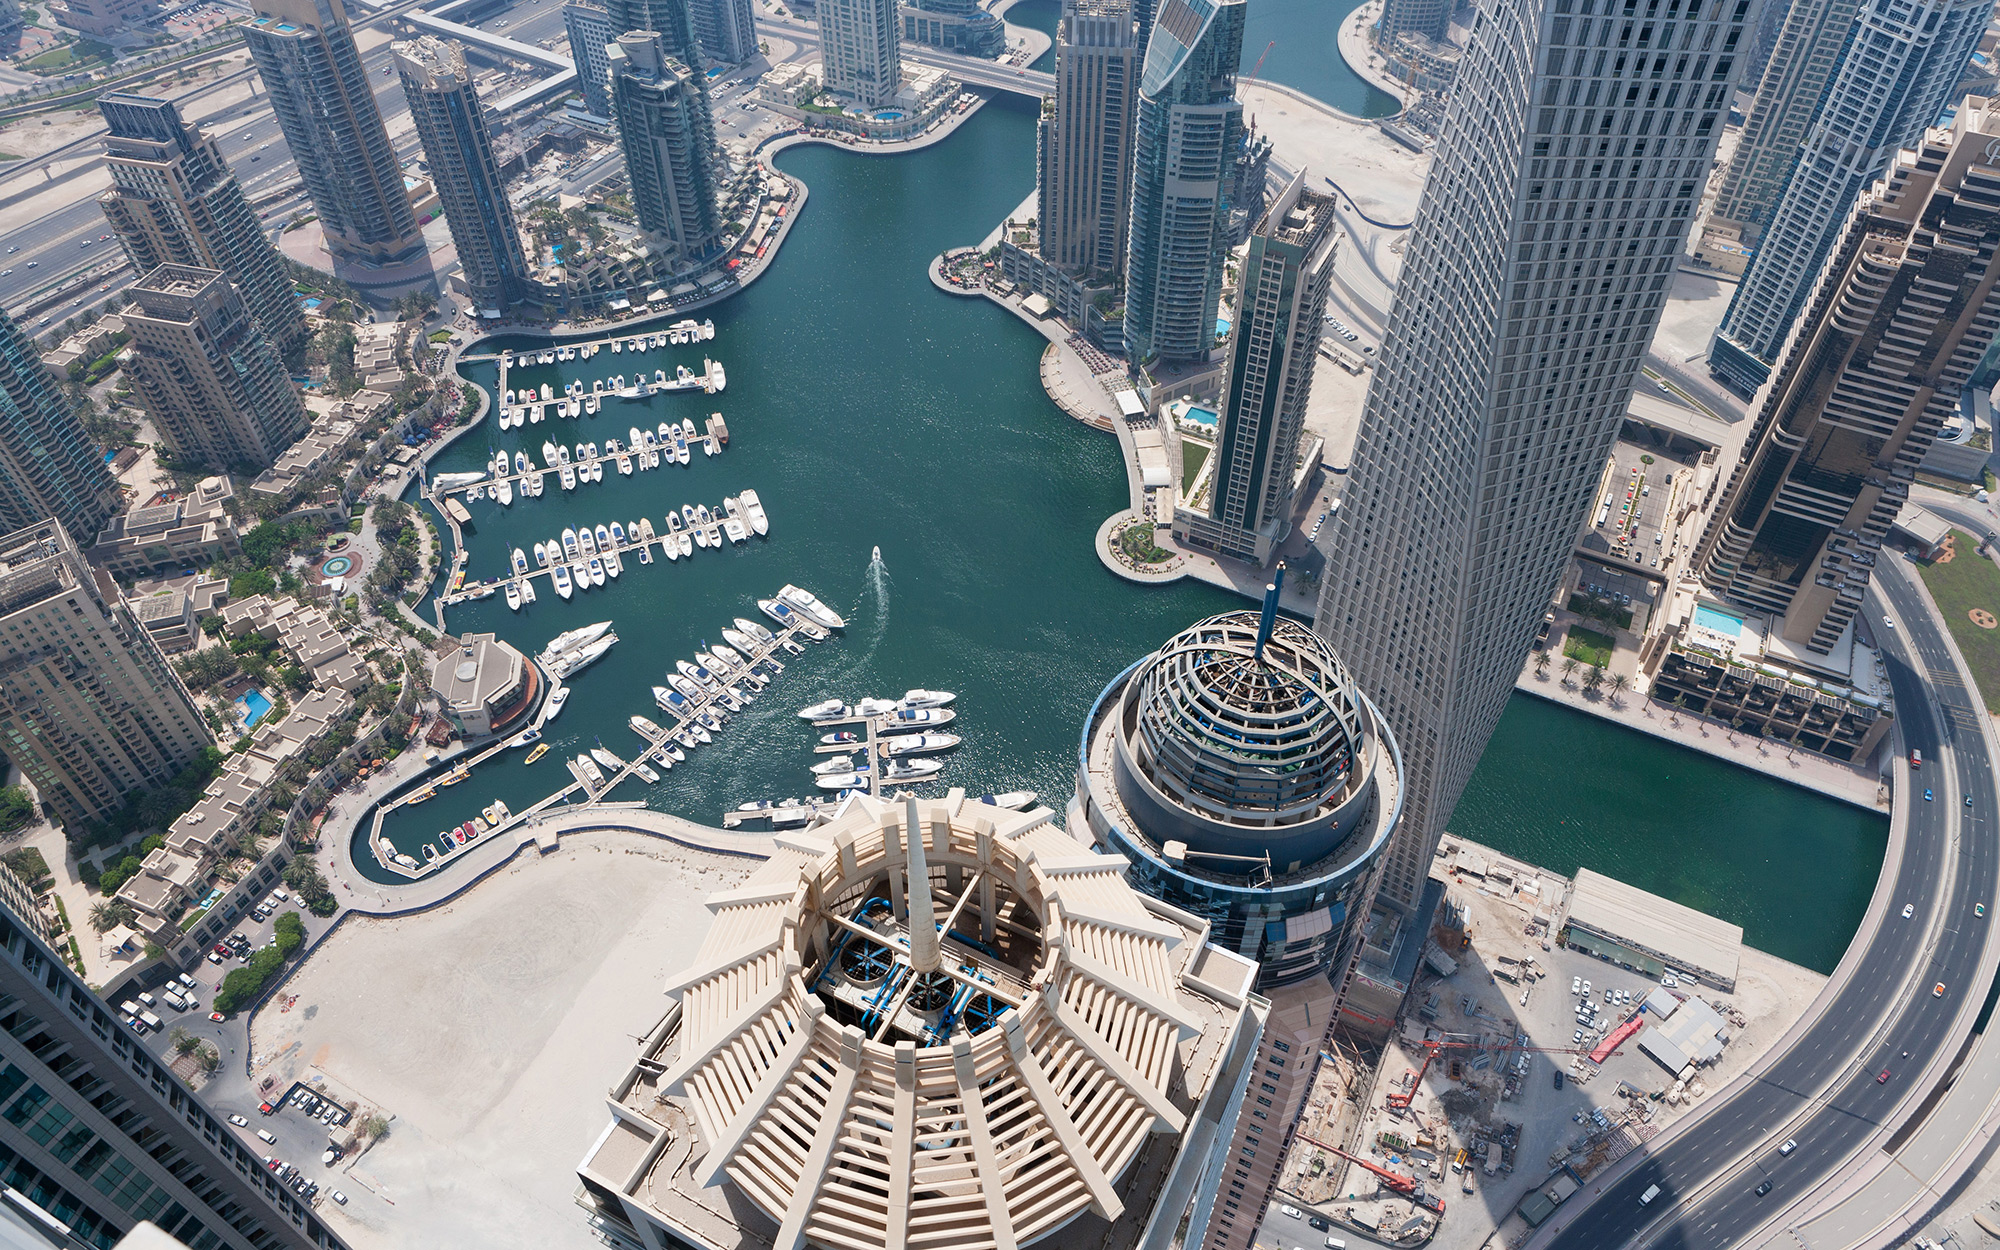 Dubai Marina is seen from the Princess Tower in Dubai, United Arab Emirates, on Wednesday, Sept. 12, 2012. The Princess tower, developed by Tameer Holding, is a 107-floor residential building with a height of 414 meters and is the tallest residential buil